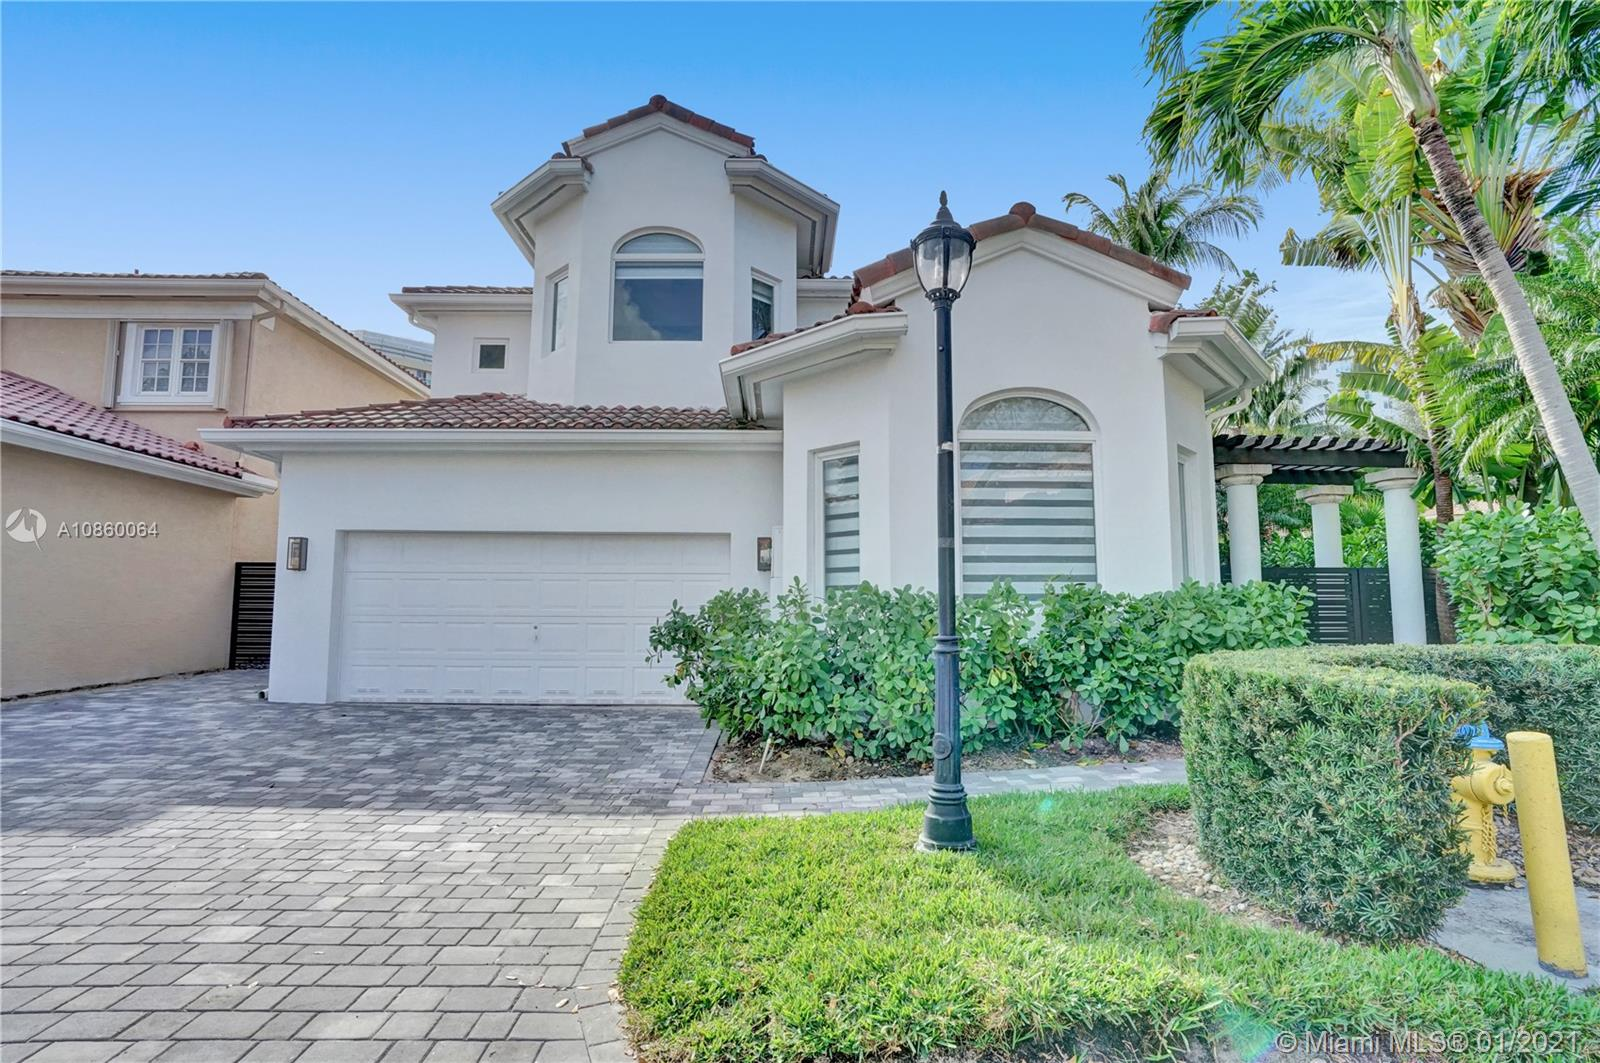 Details for 3936 194th Trl, Sunny Isles Beach, FL 33160